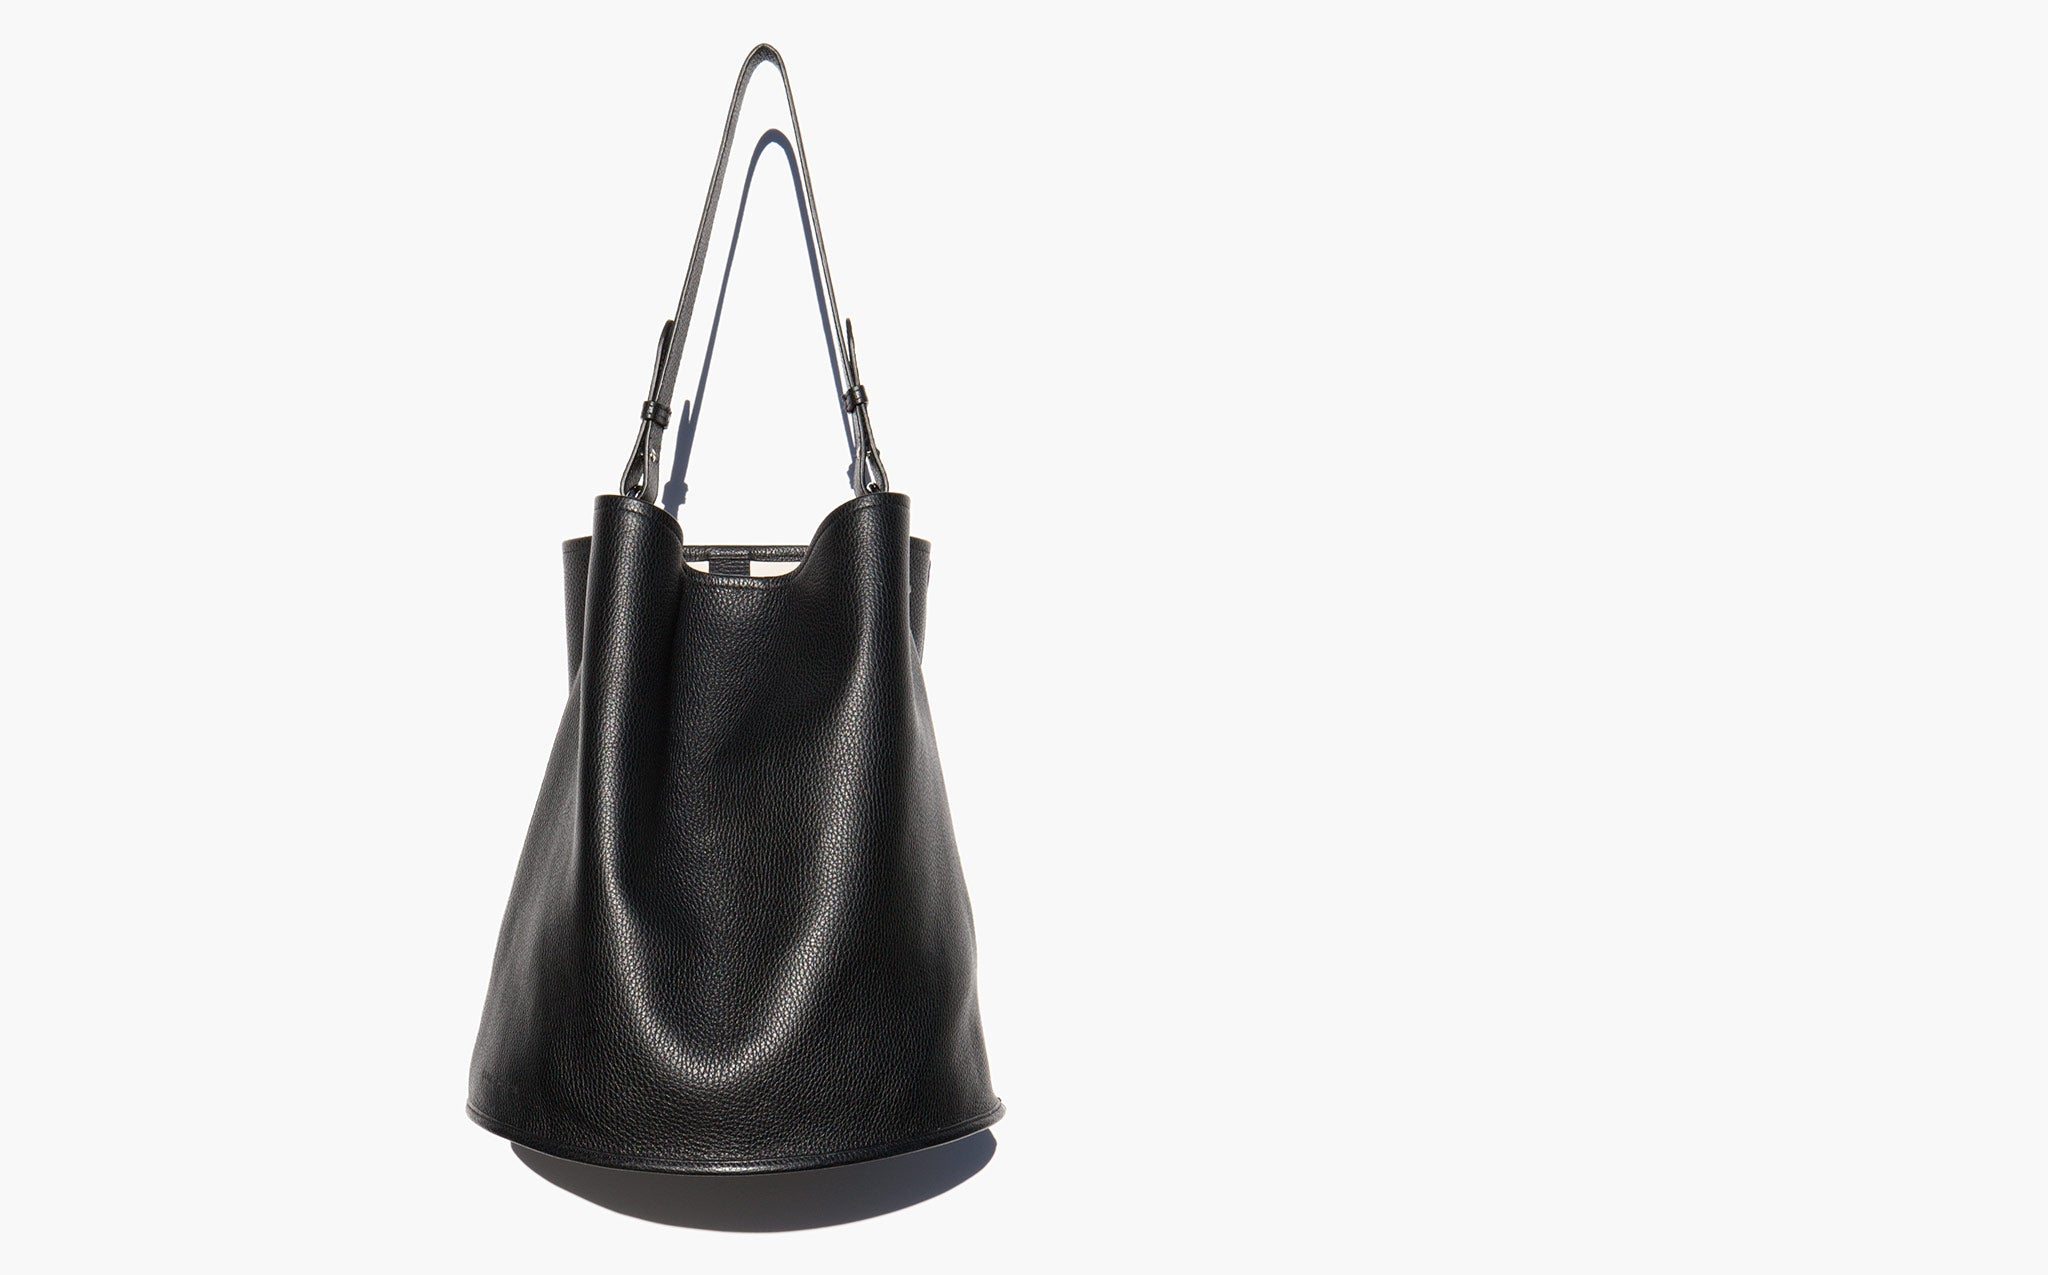 Creatures Of Comfort Black Morocco Leather Large Bucket Bag